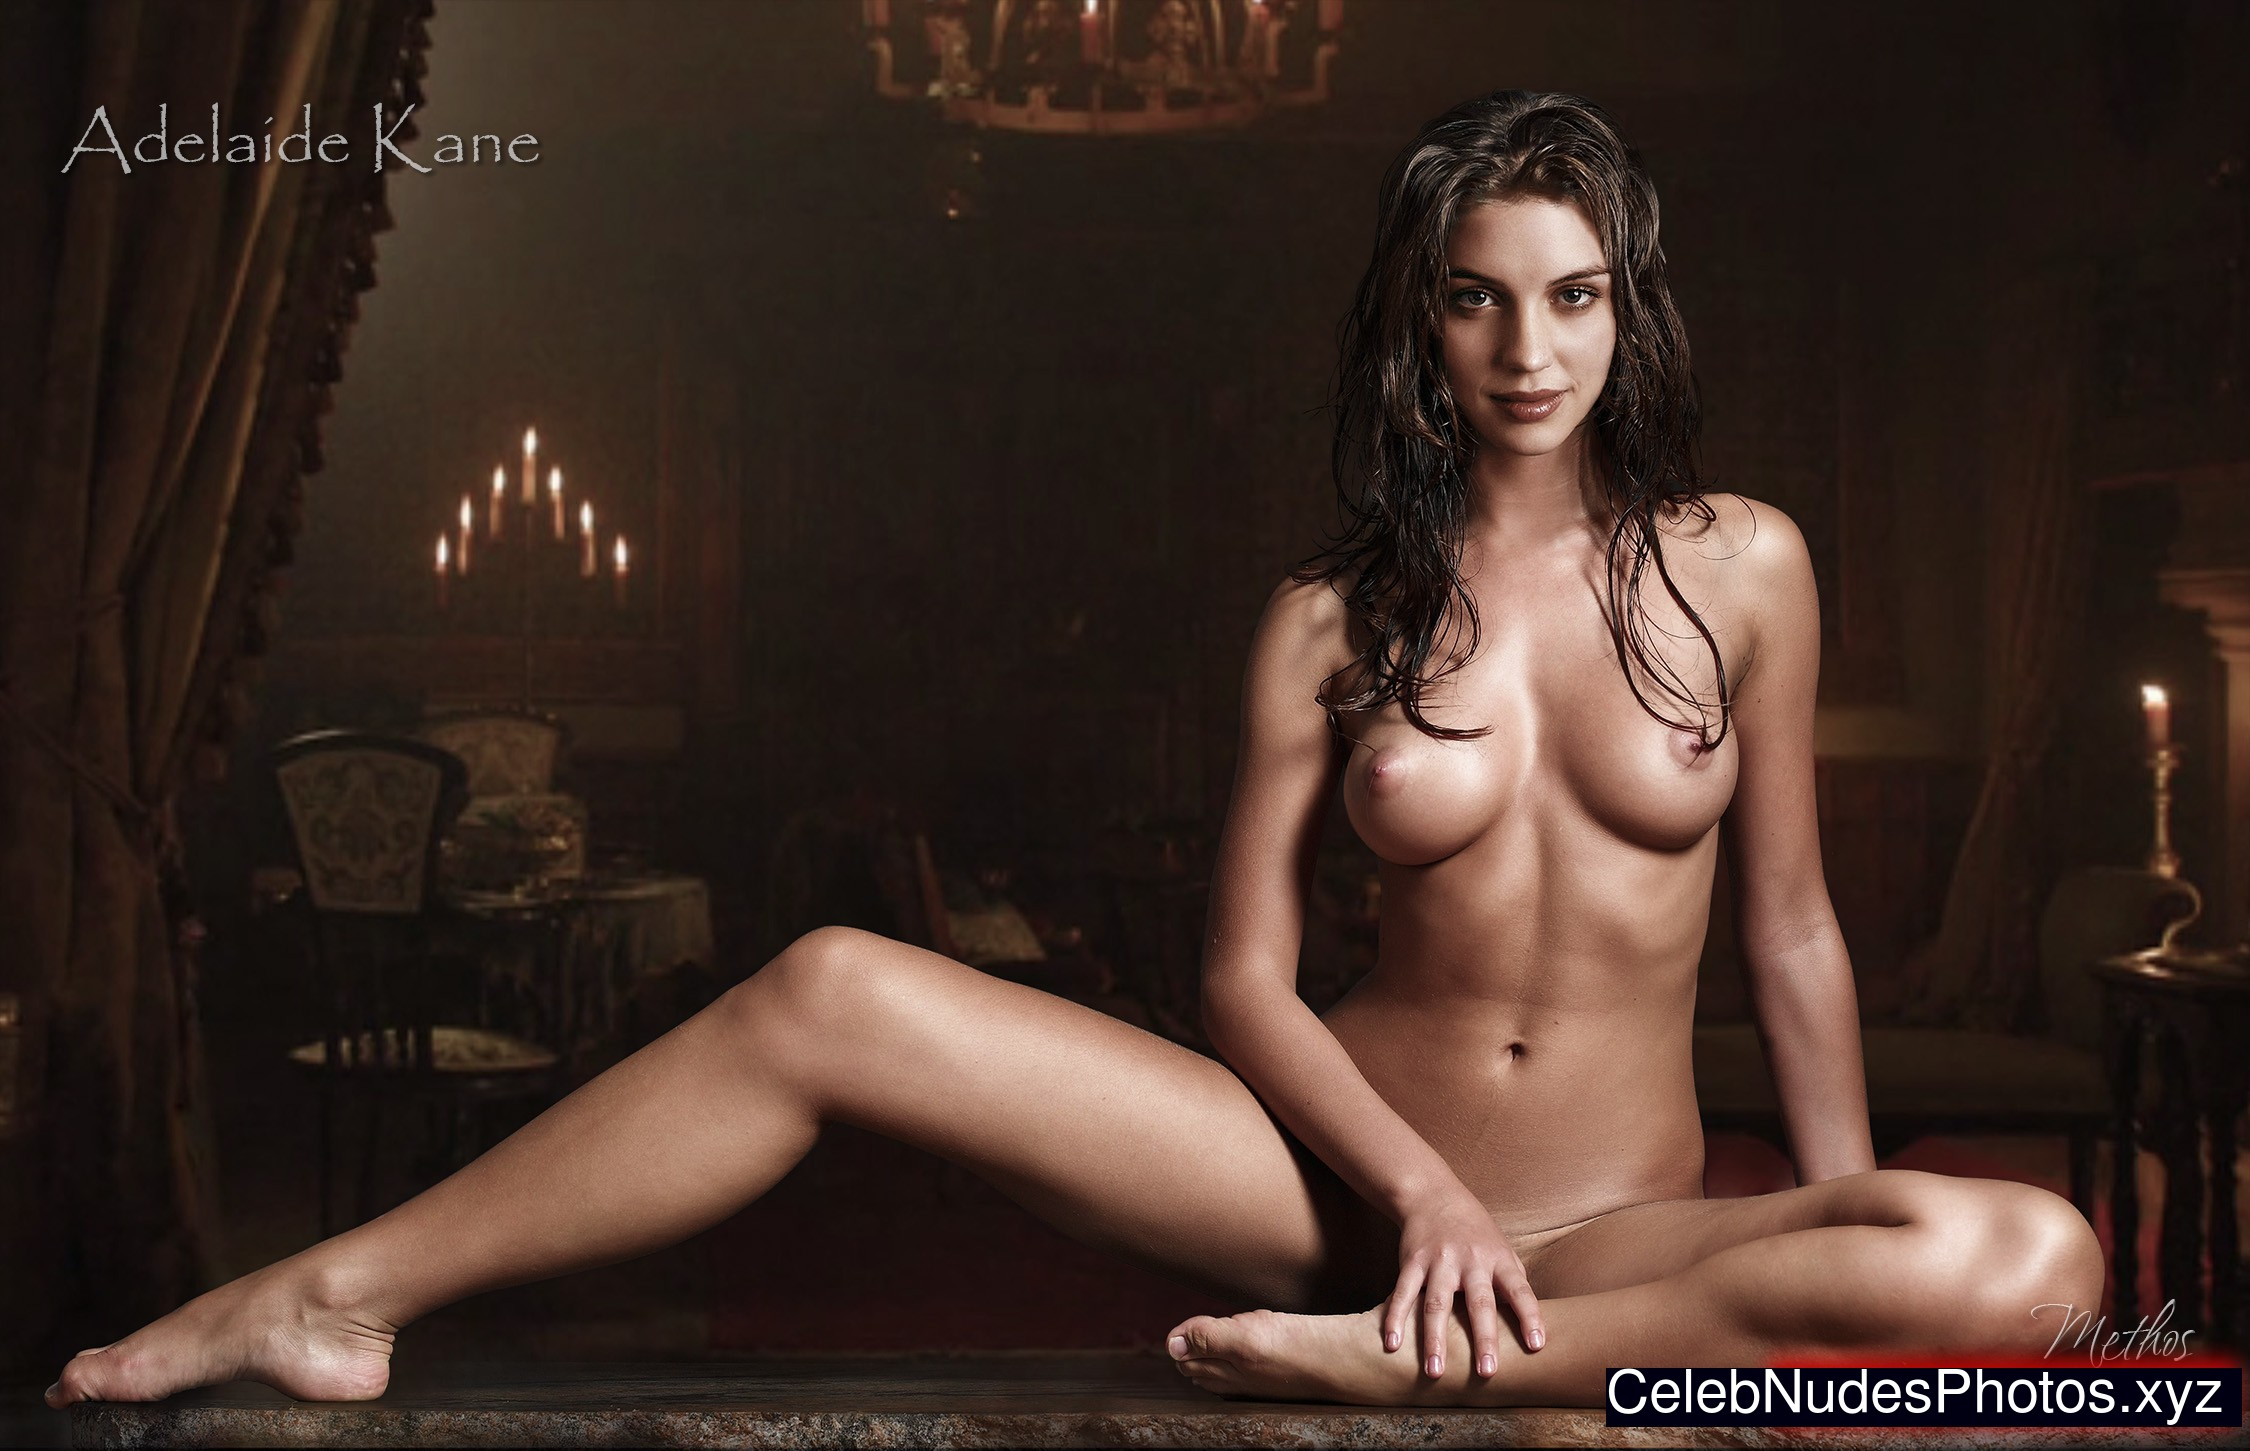 Adelaide kane nude pictures